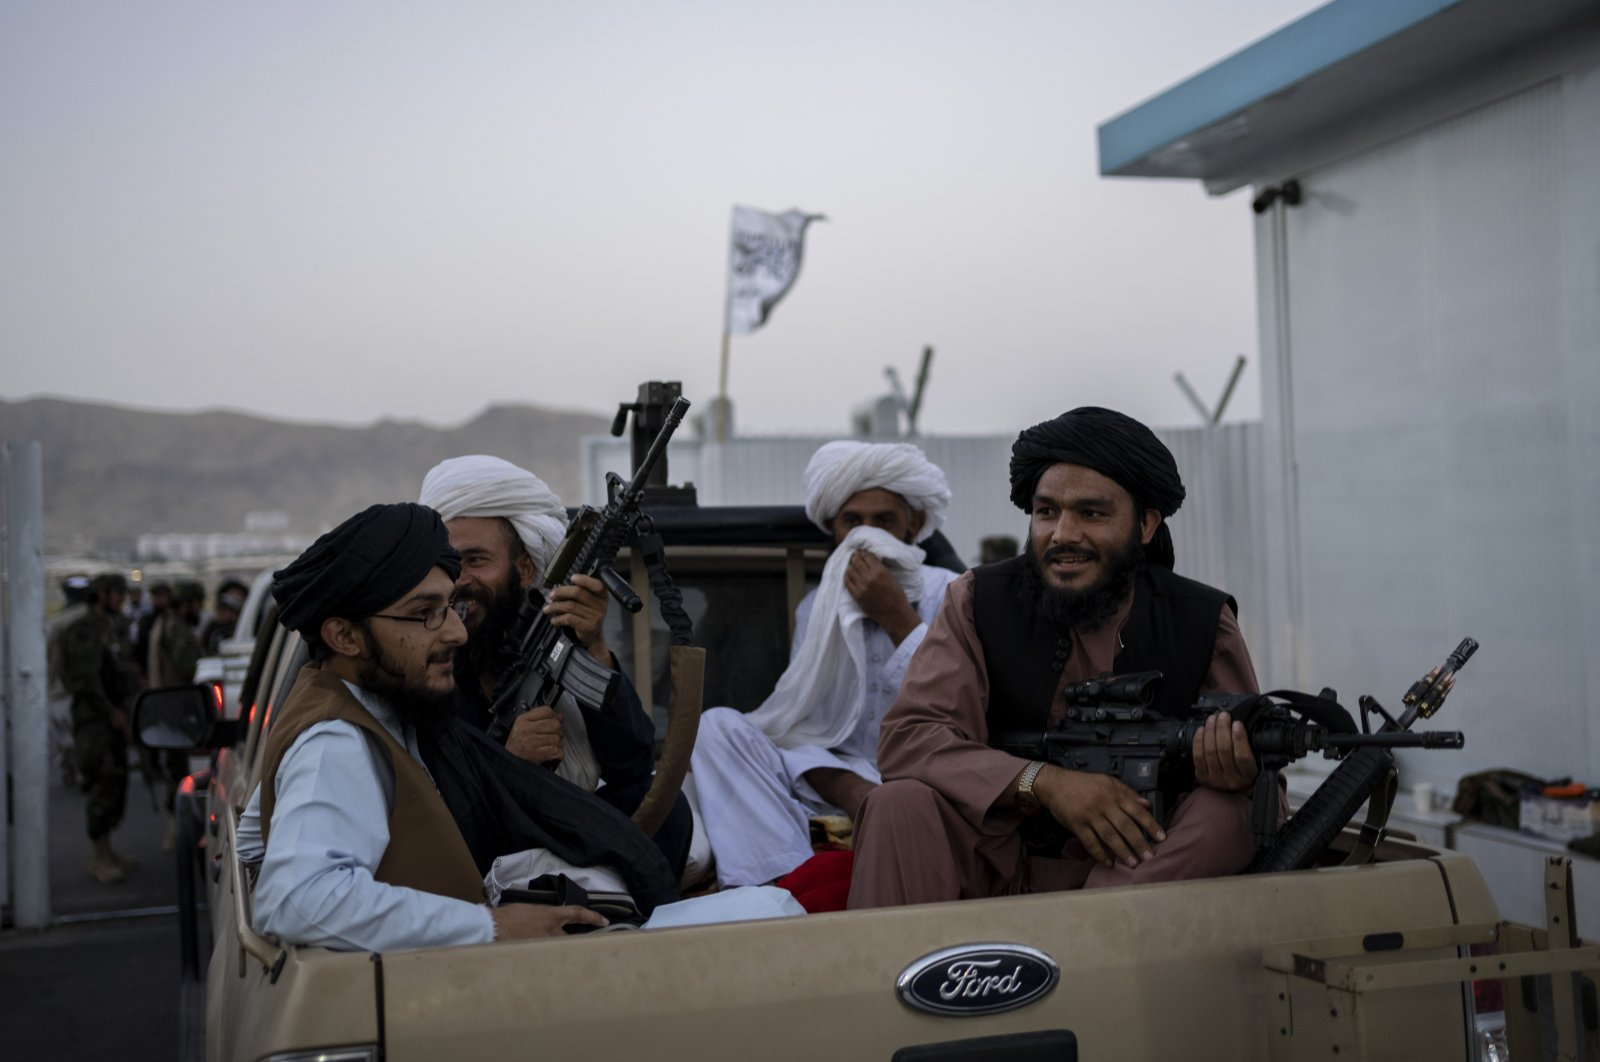 Taliban fighters sit in a pickup truck at the airport in Kabul, Afghanistan, Sept. 9, 2021. (AP Photo)